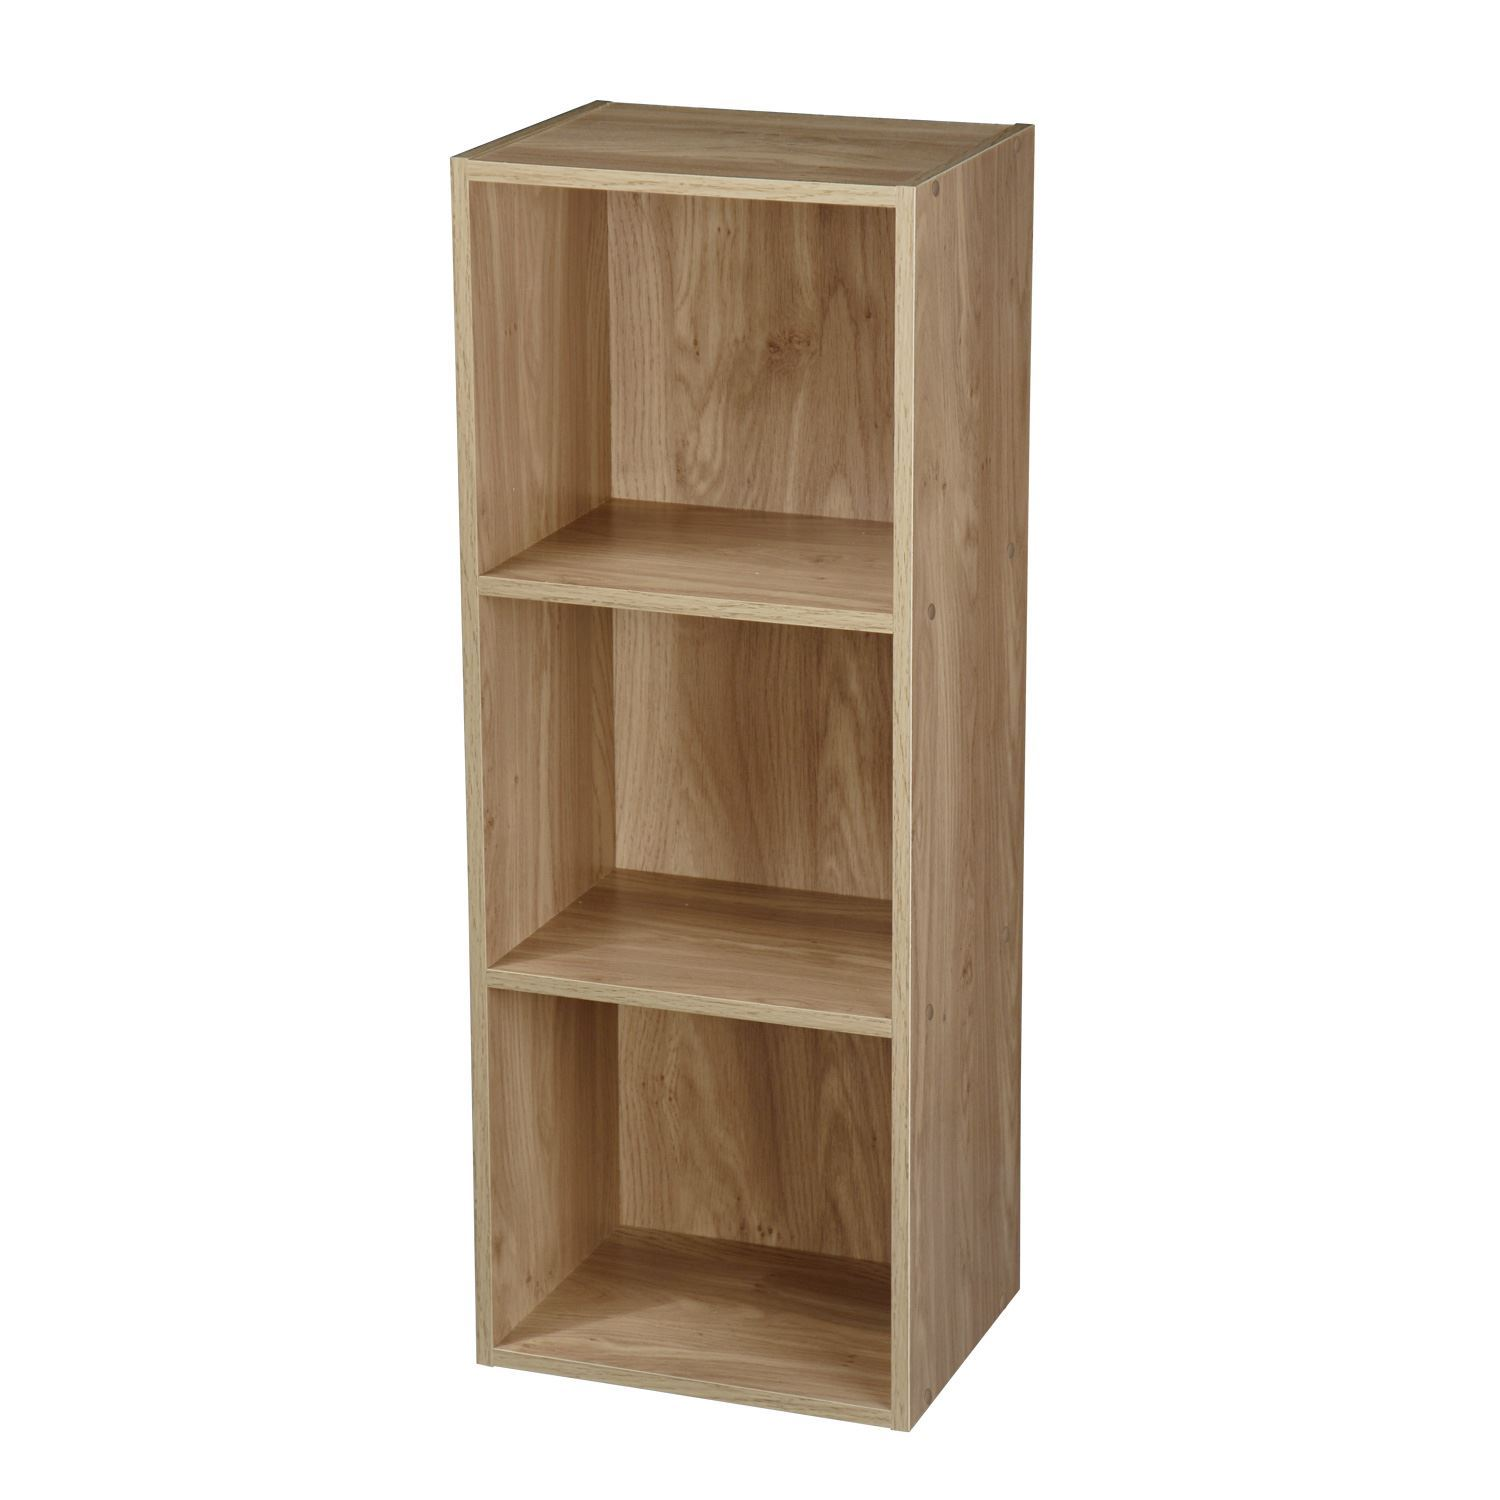 1 2 3 4 tier wooden bookcase shelving display storage wood for 4 unit